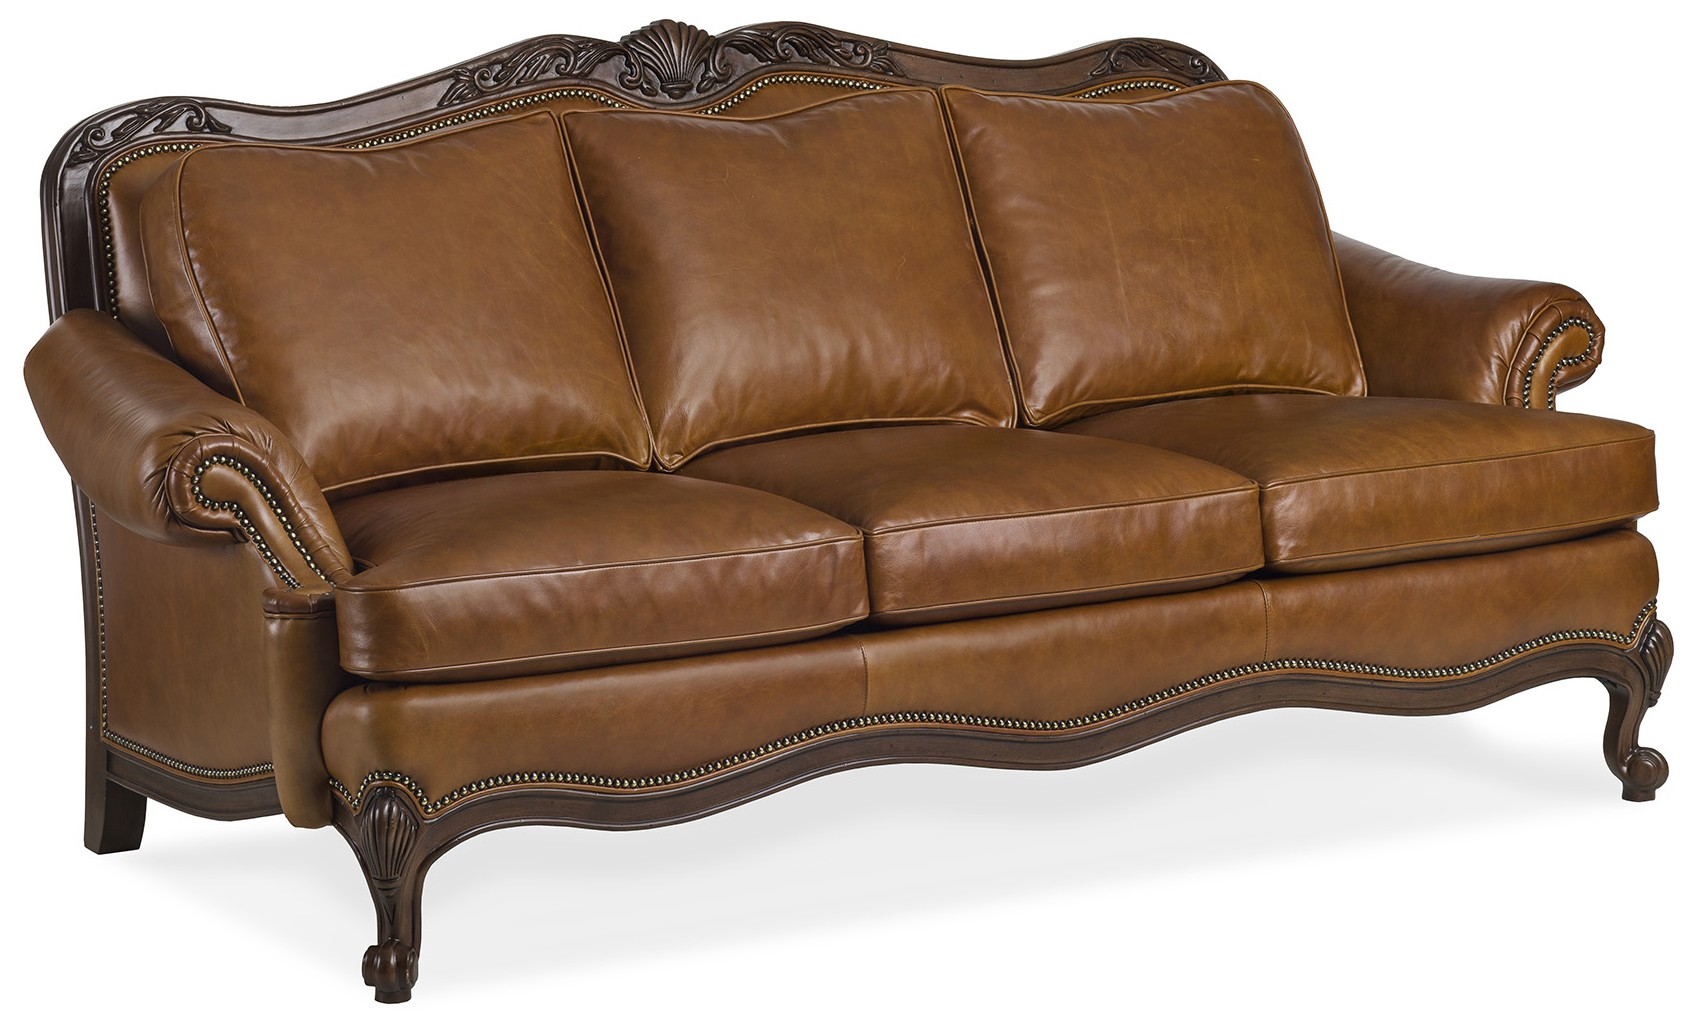 Chestnut brown leather sofa